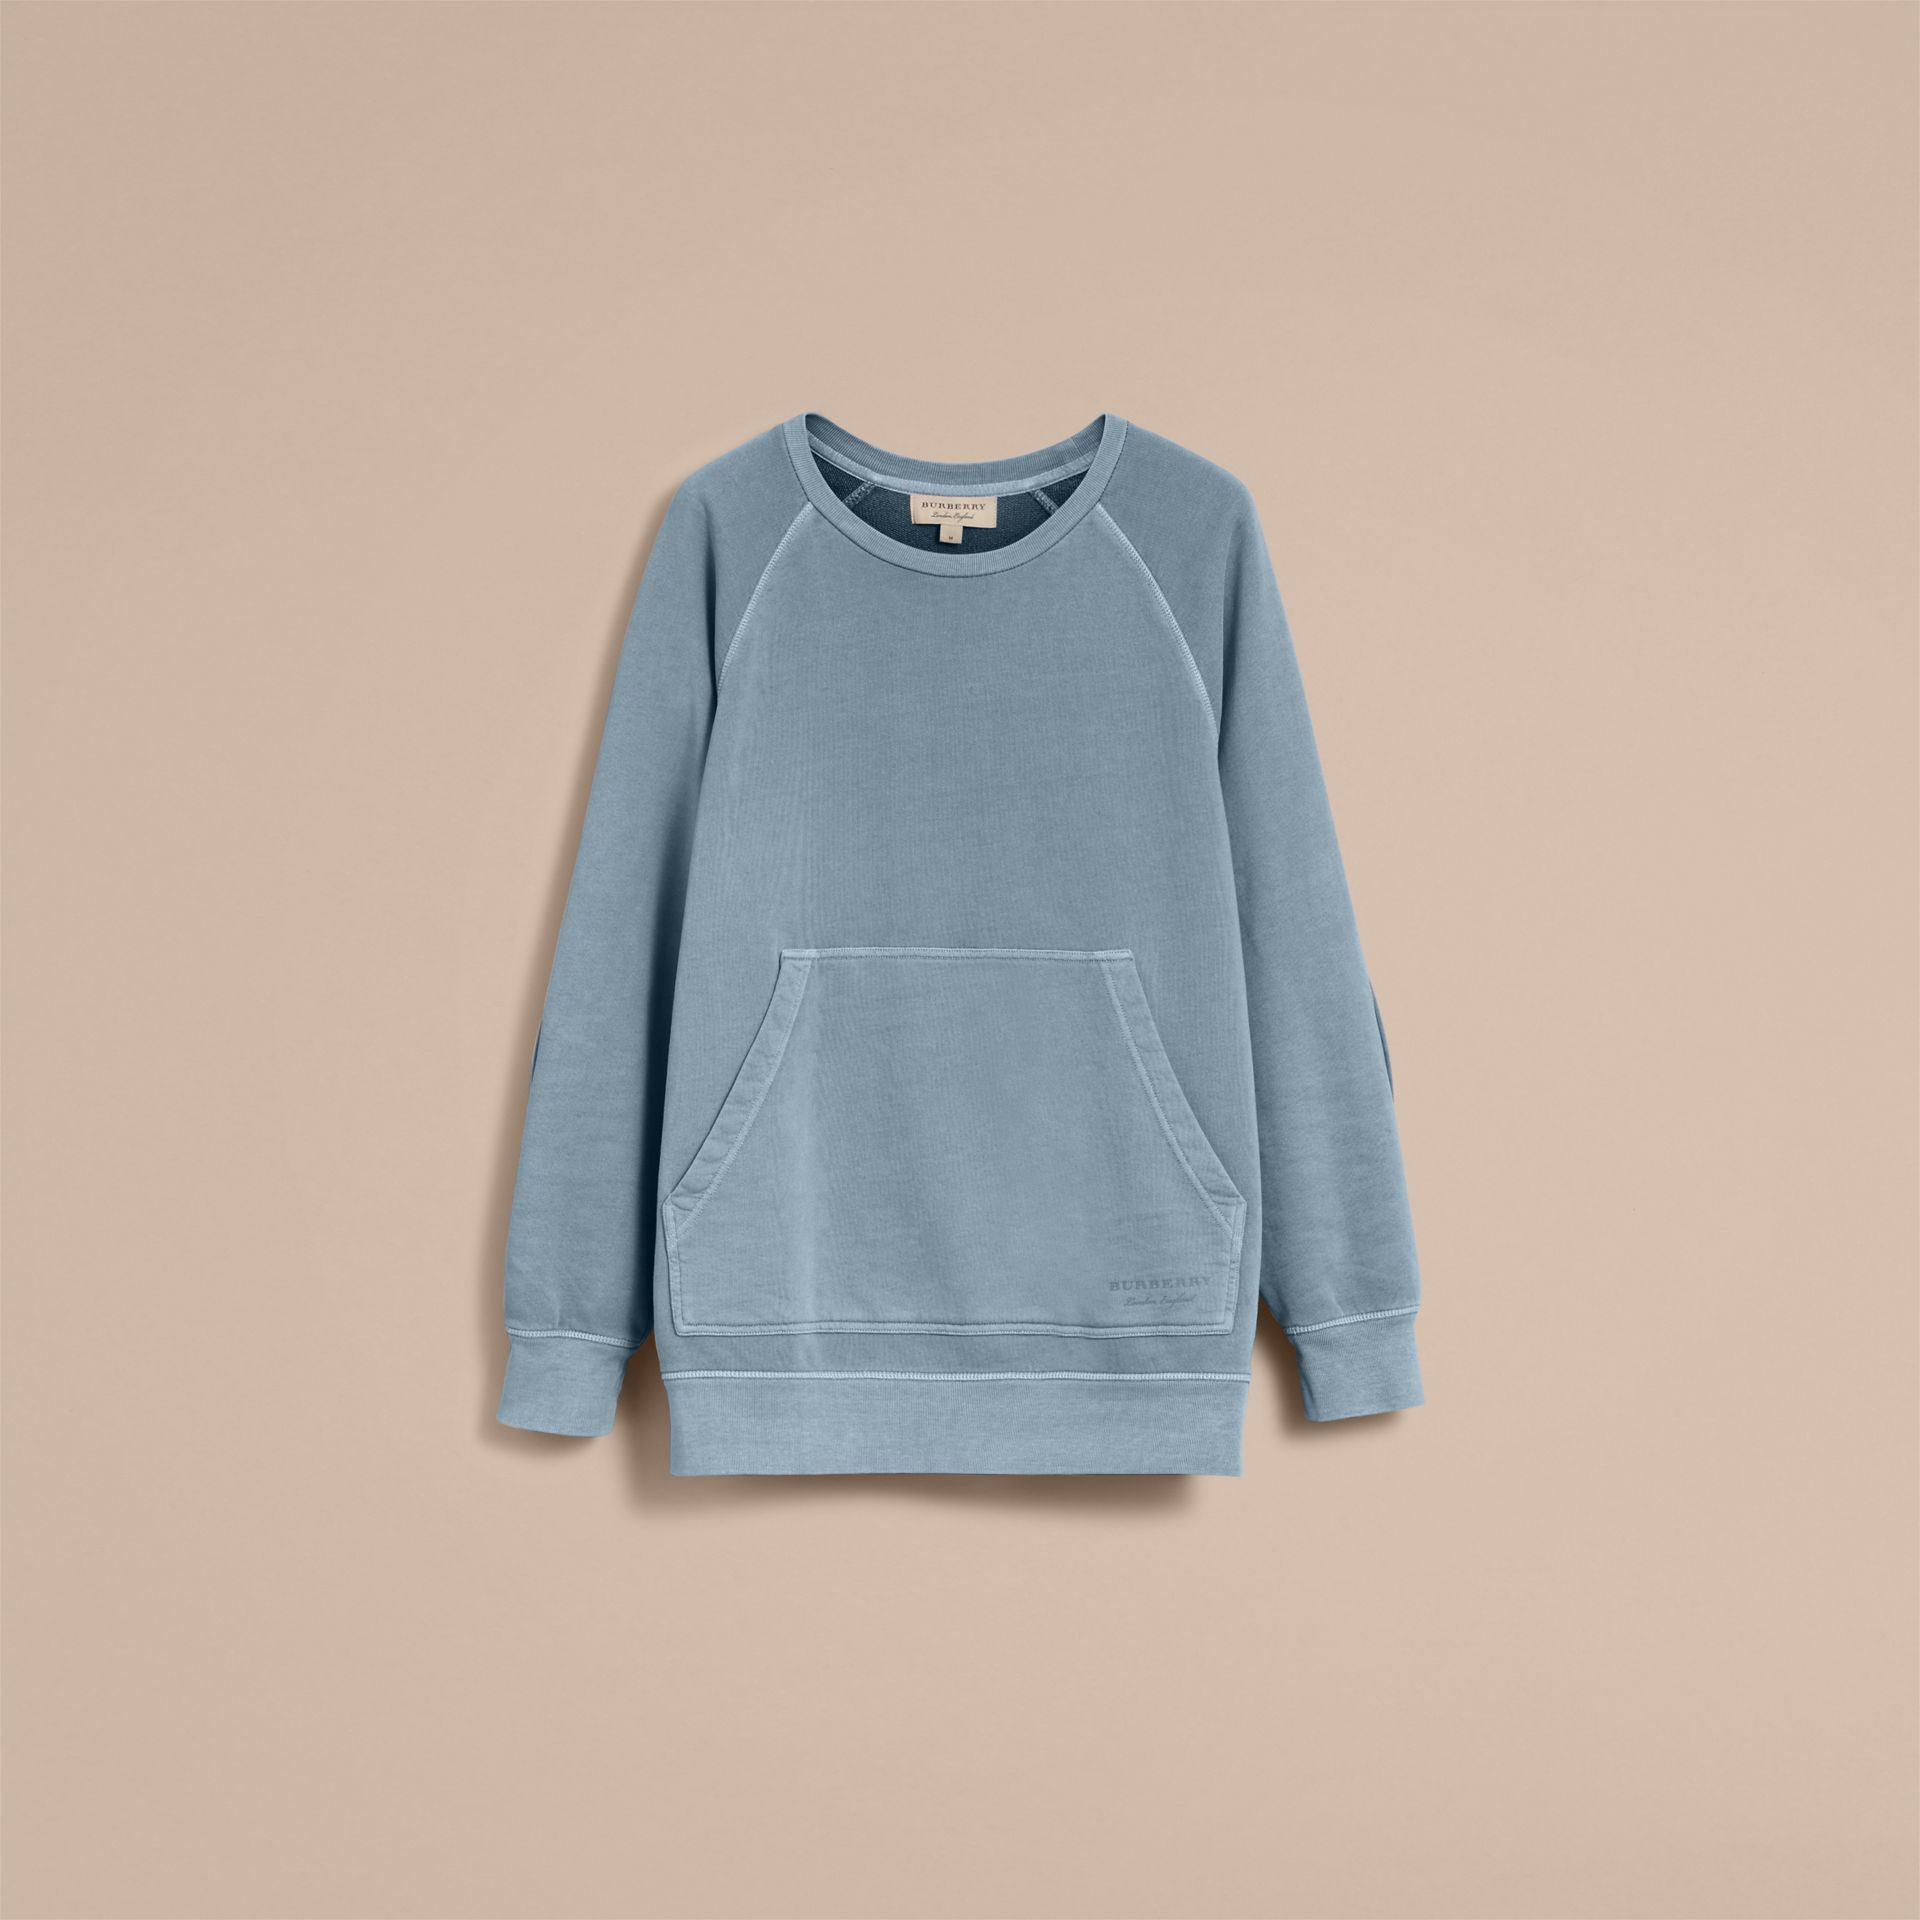 Unisex Pigment-dyed Cotton Oversize Sweatshirt in Dusty Blue - Men | Burberry - gallery image 4